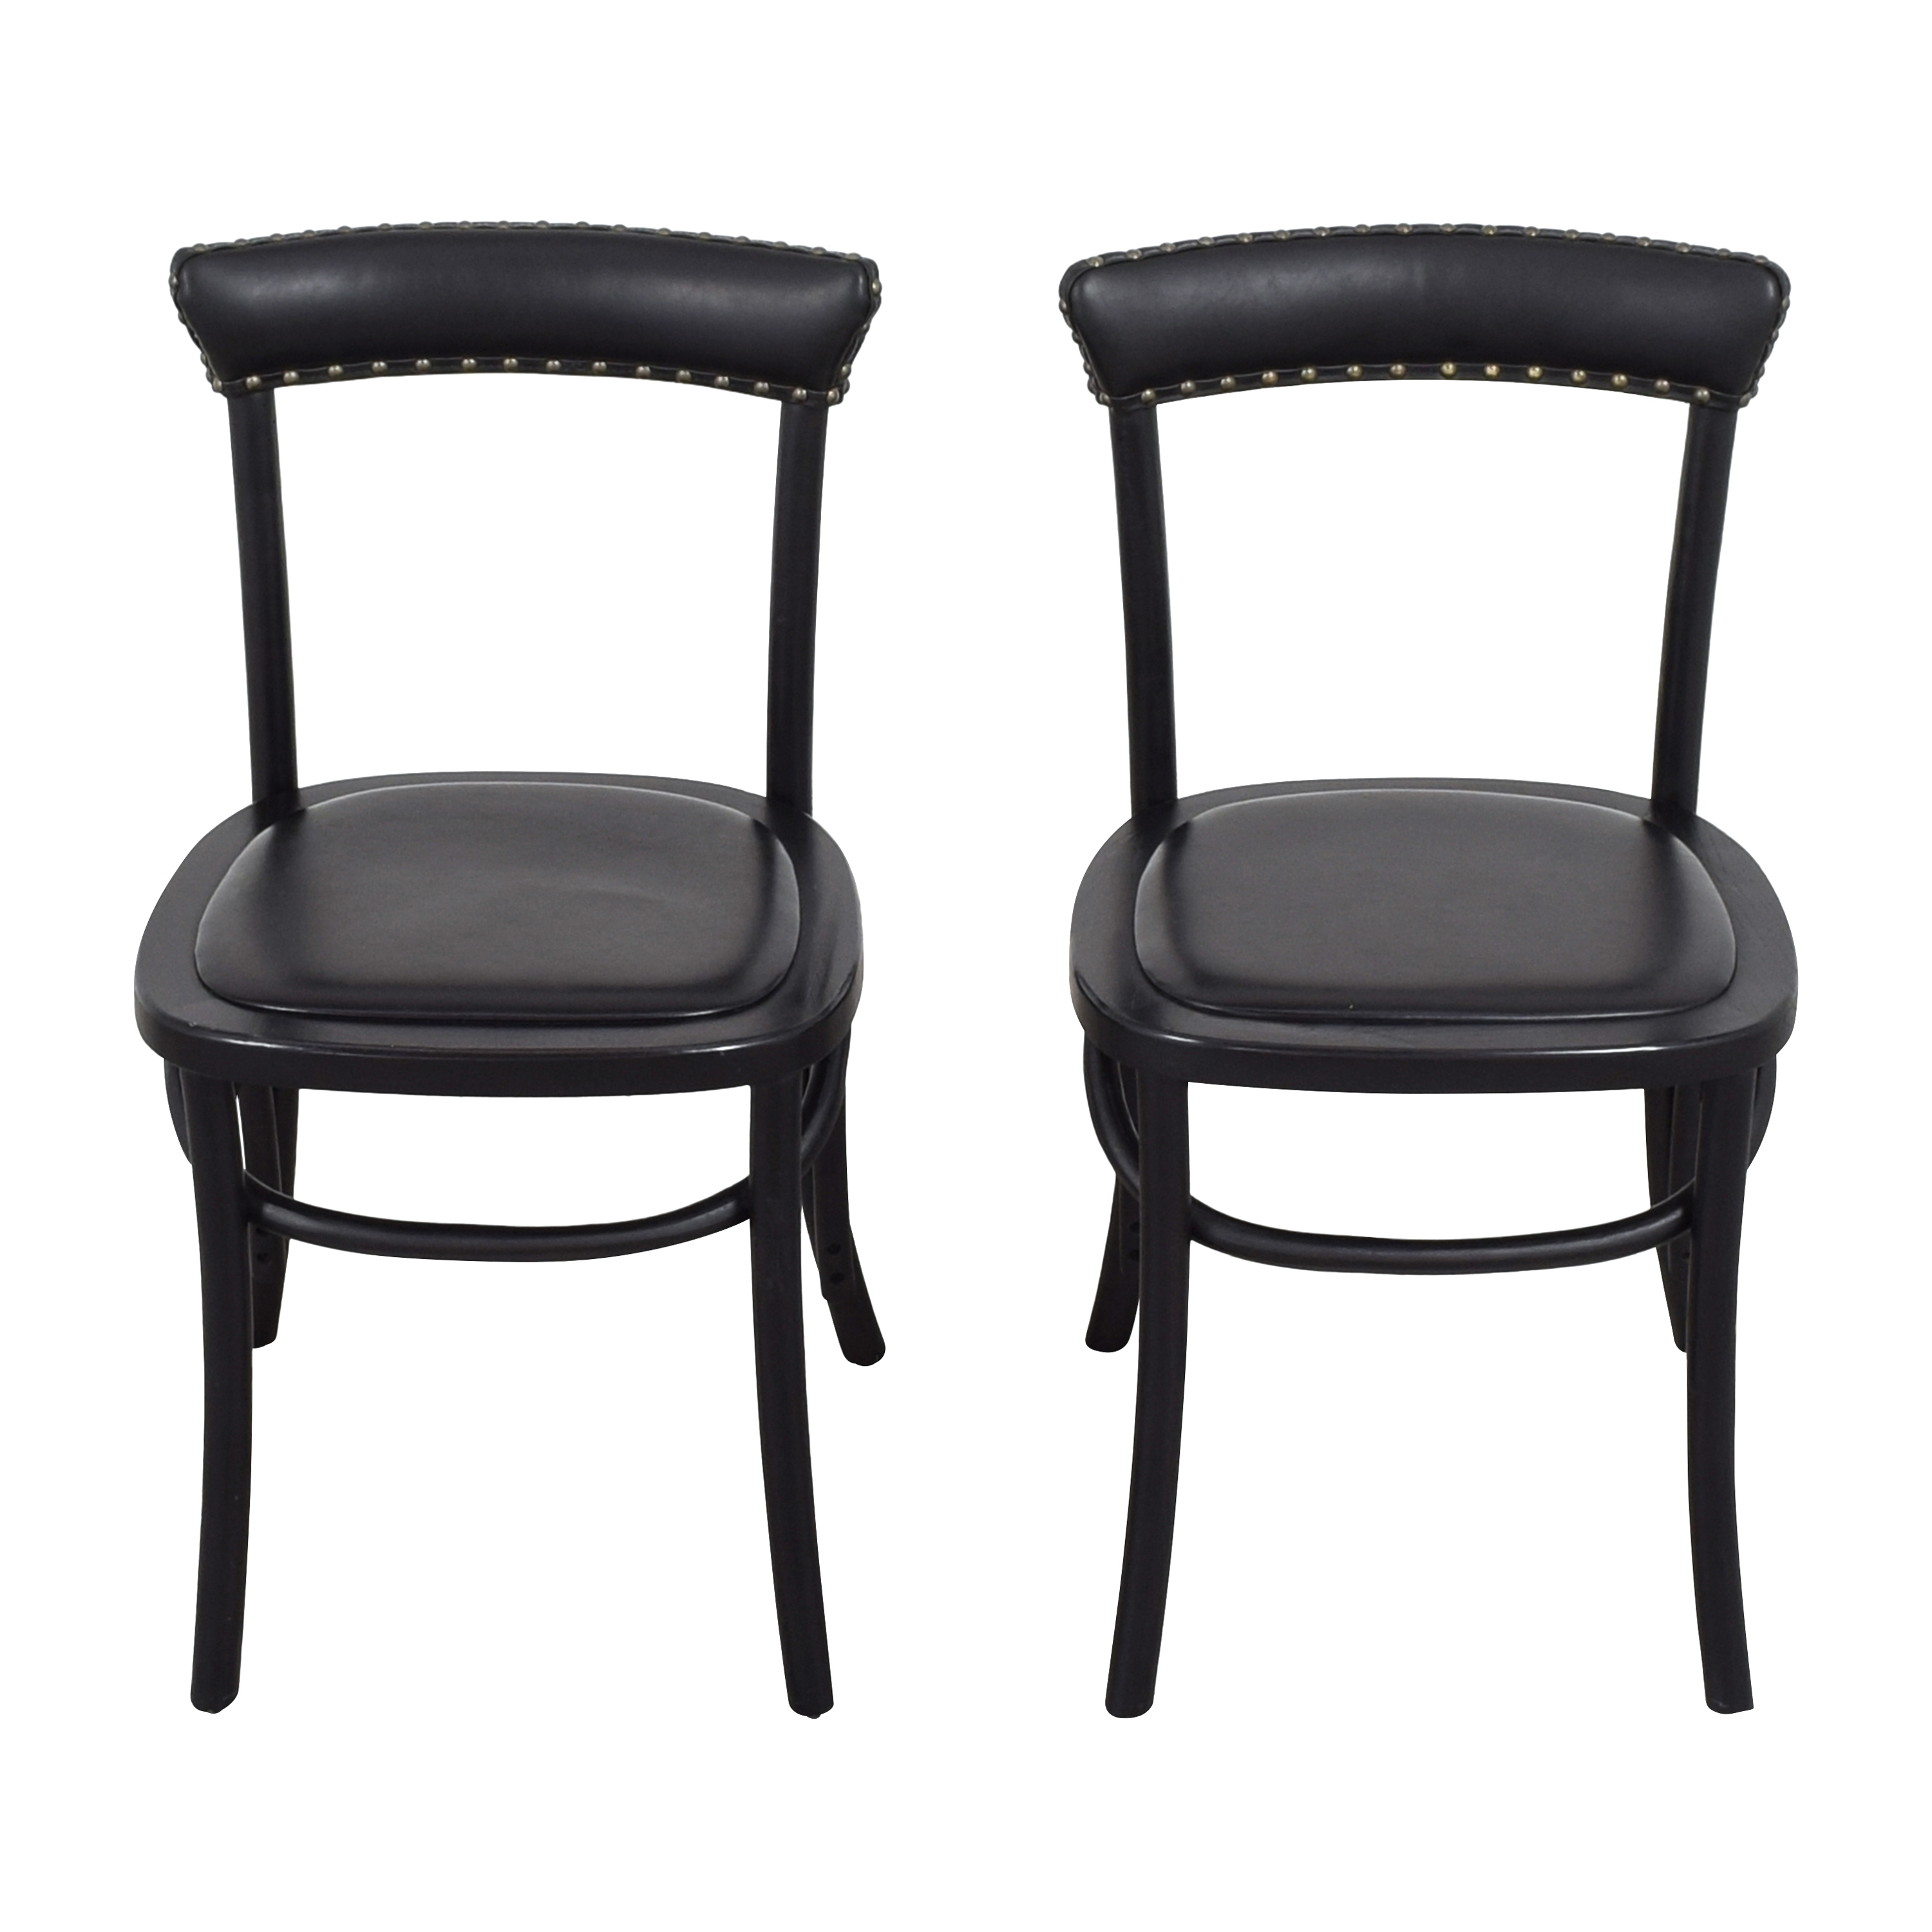 Pottery Barn Pottery Barn Lucas Bistro Dining Chairs black